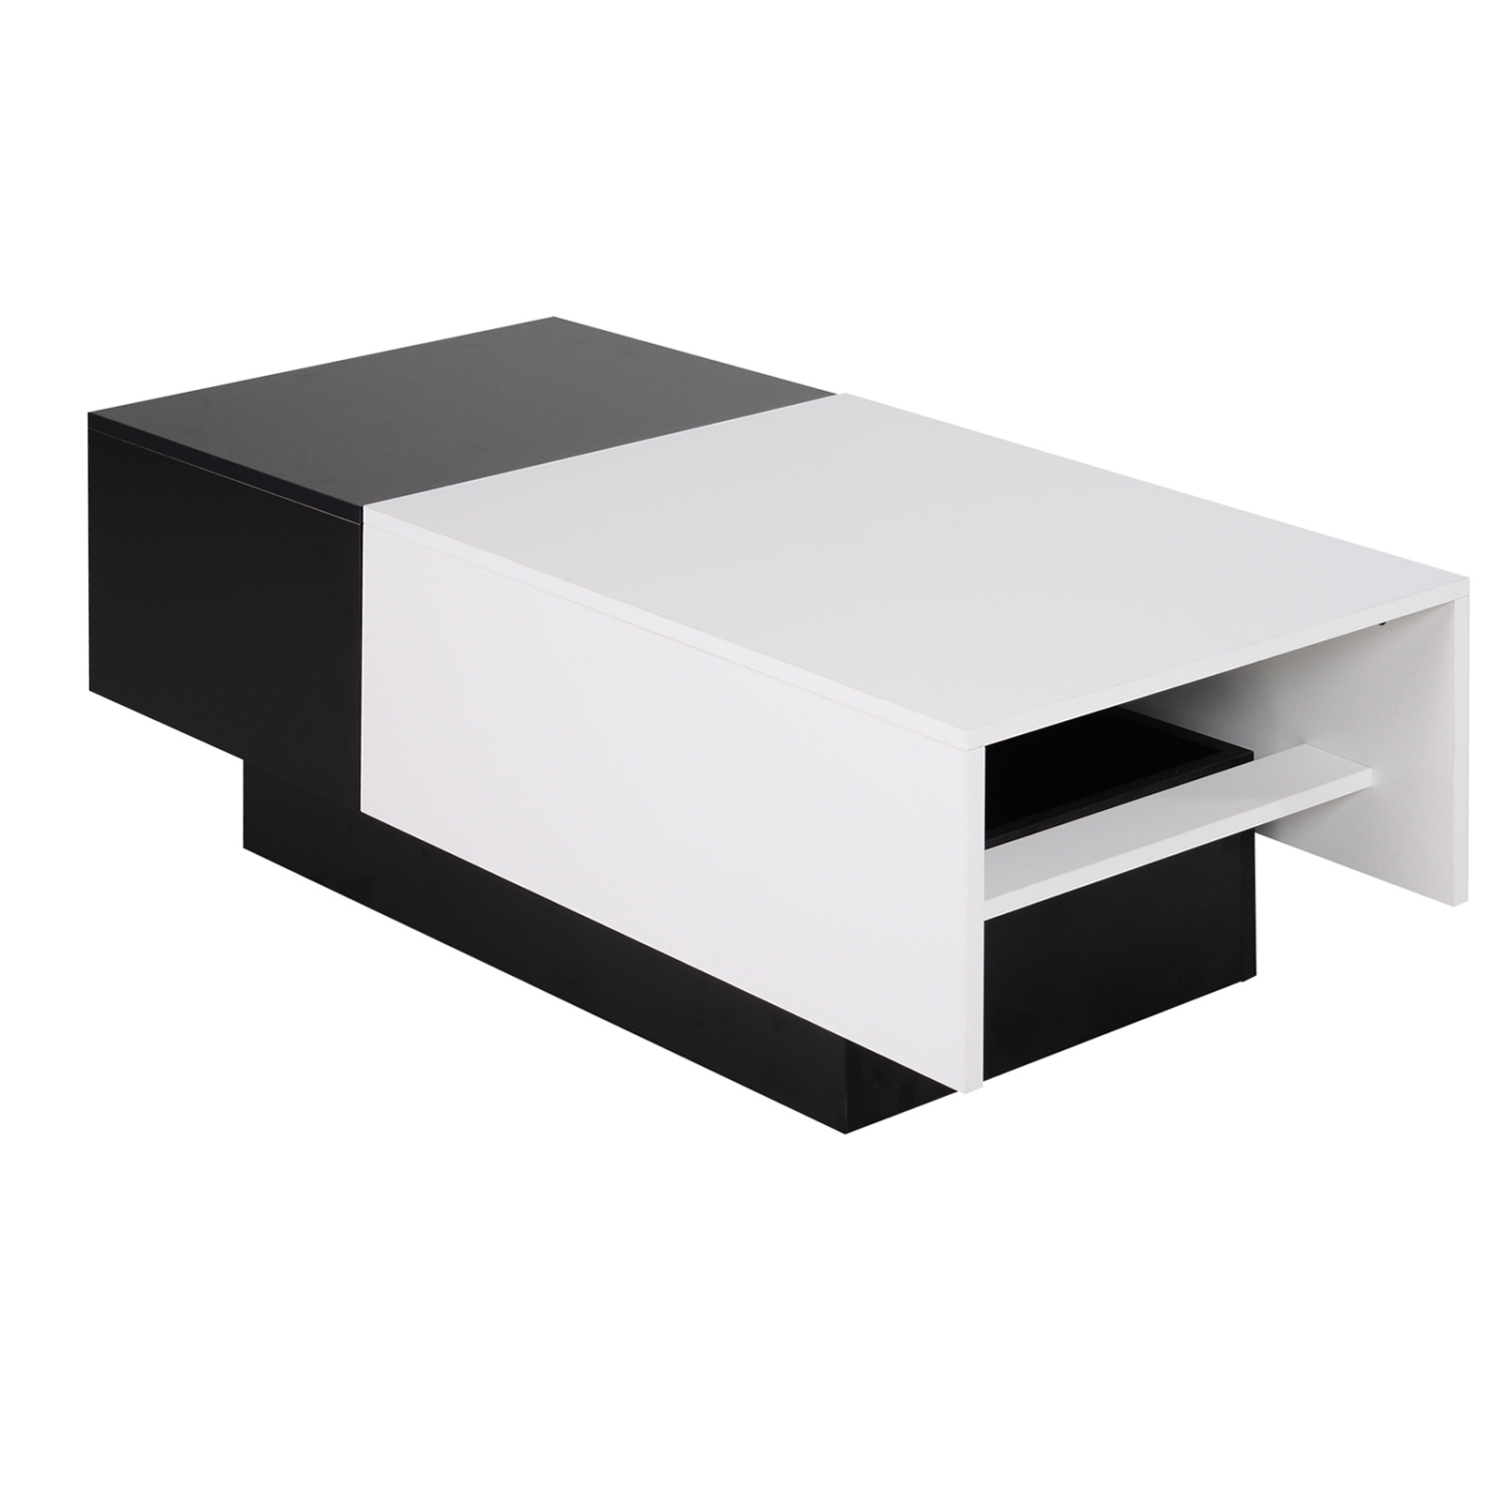 Homcom modern rectangular wooden coffee table with slide top trunk storage black white online only